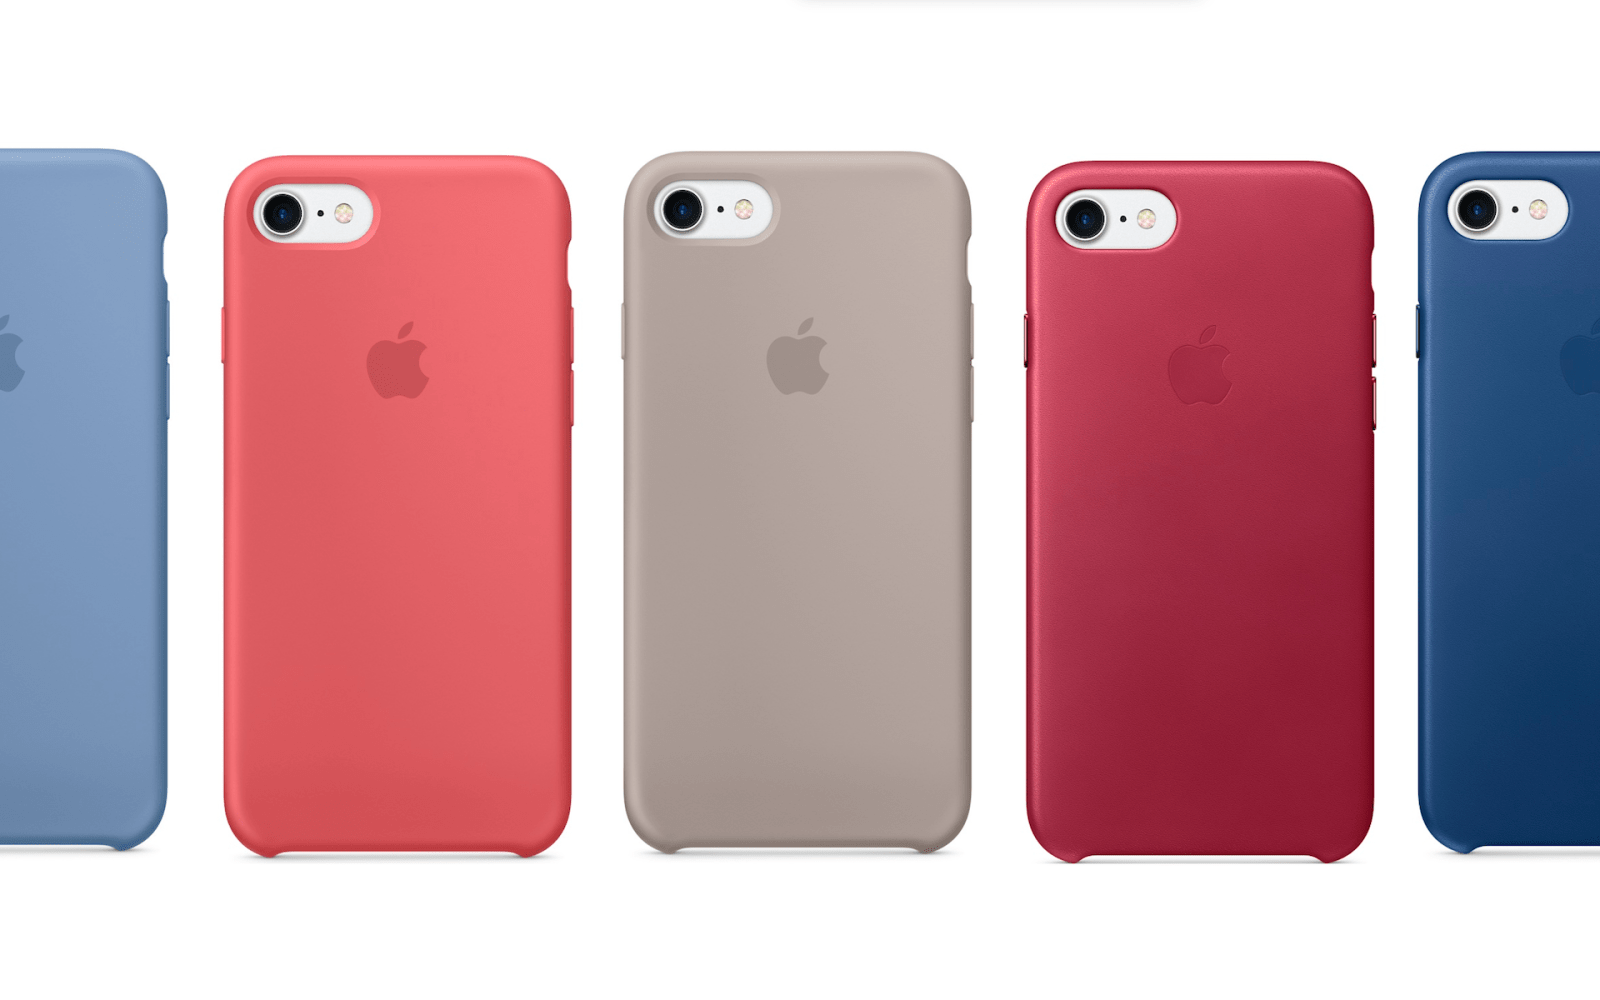 coques d'iPhone 7